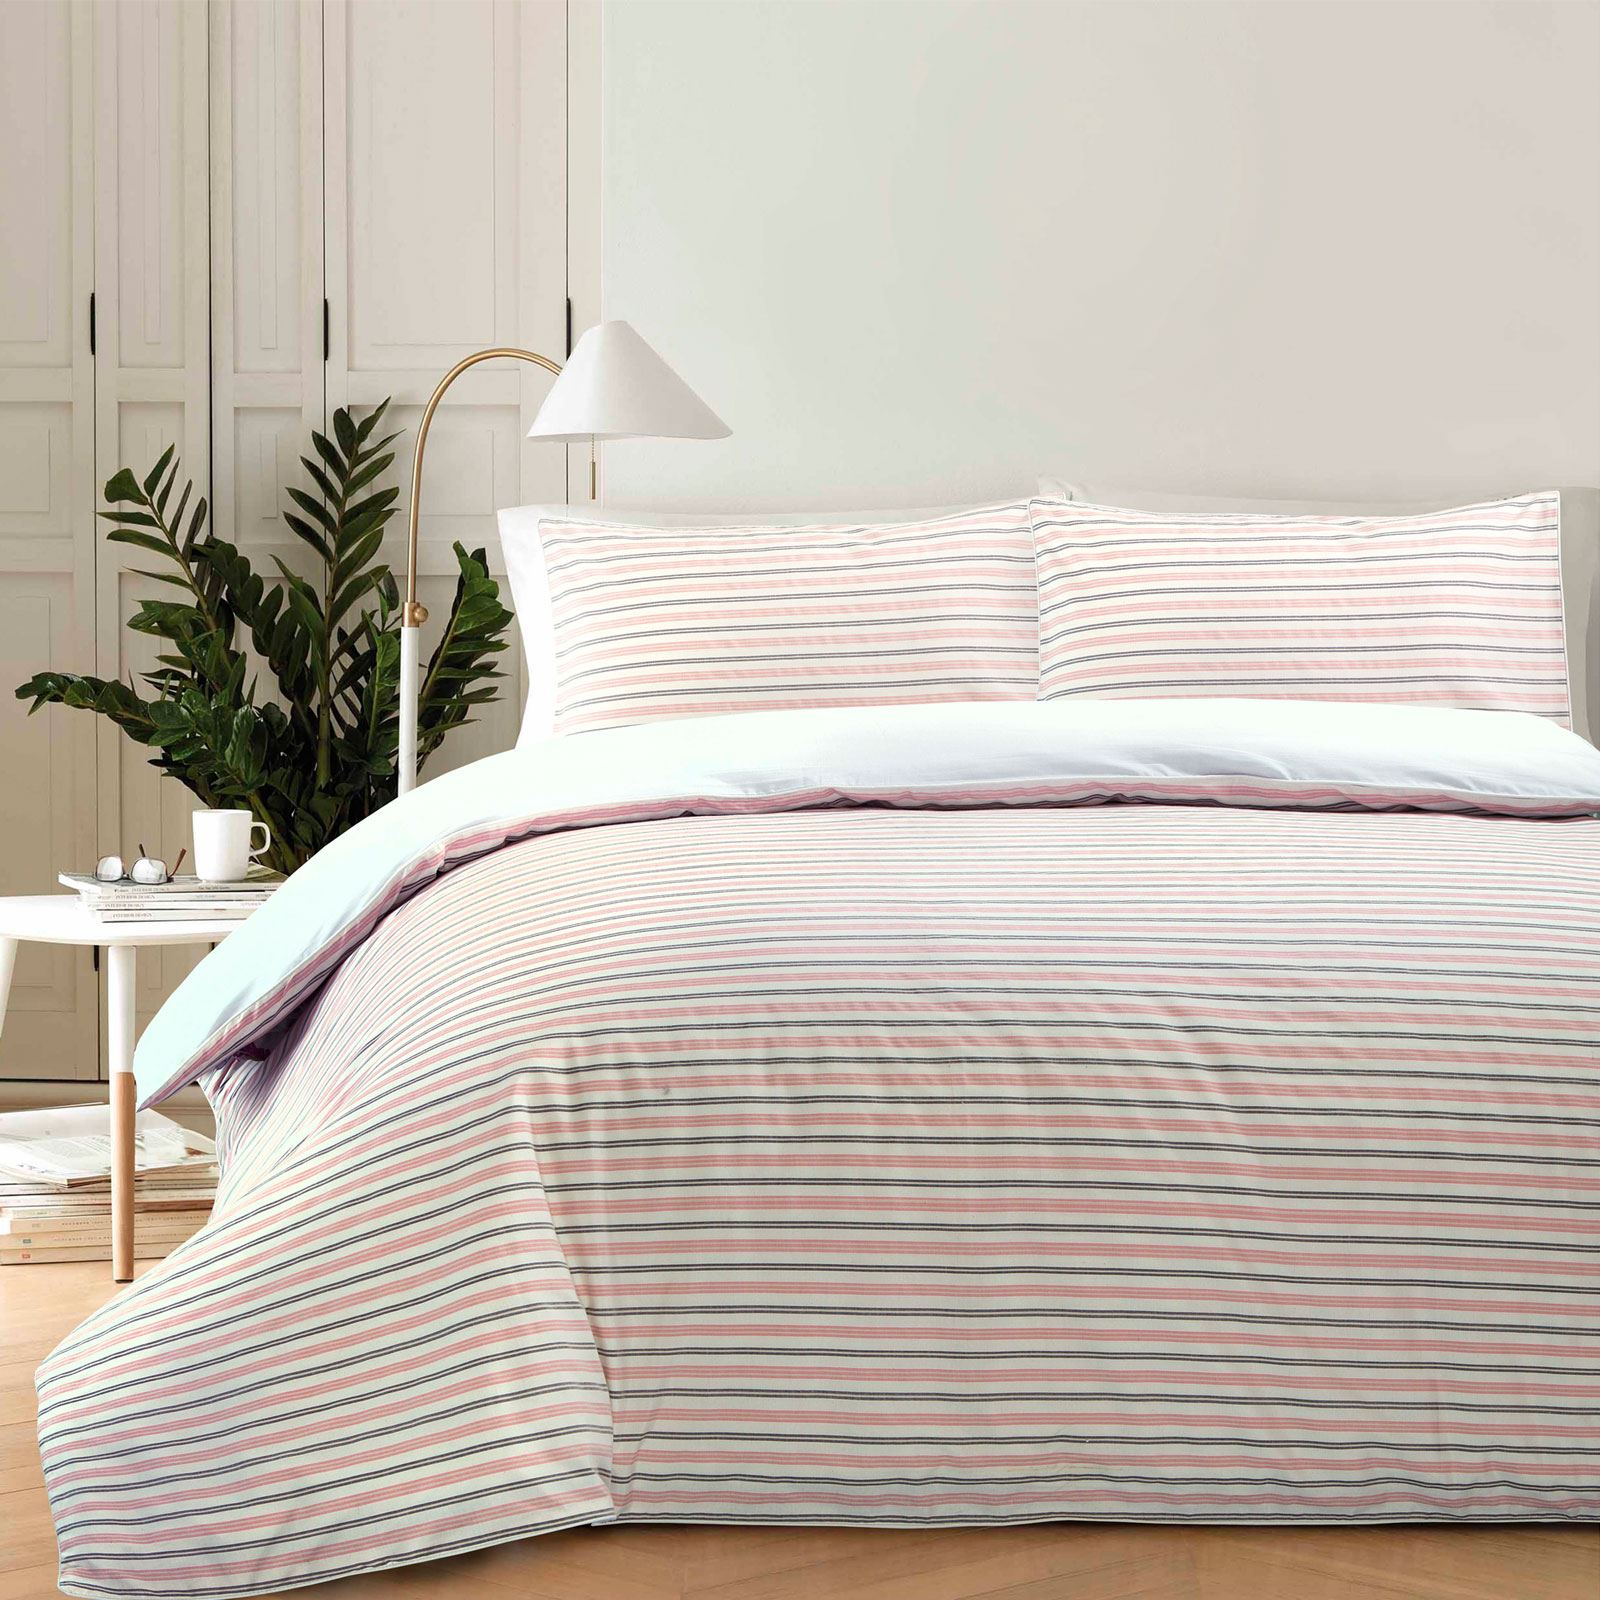 sands set modern shipping piece today hilfiger product tommy chambray cover bedding overstock bath free duvet